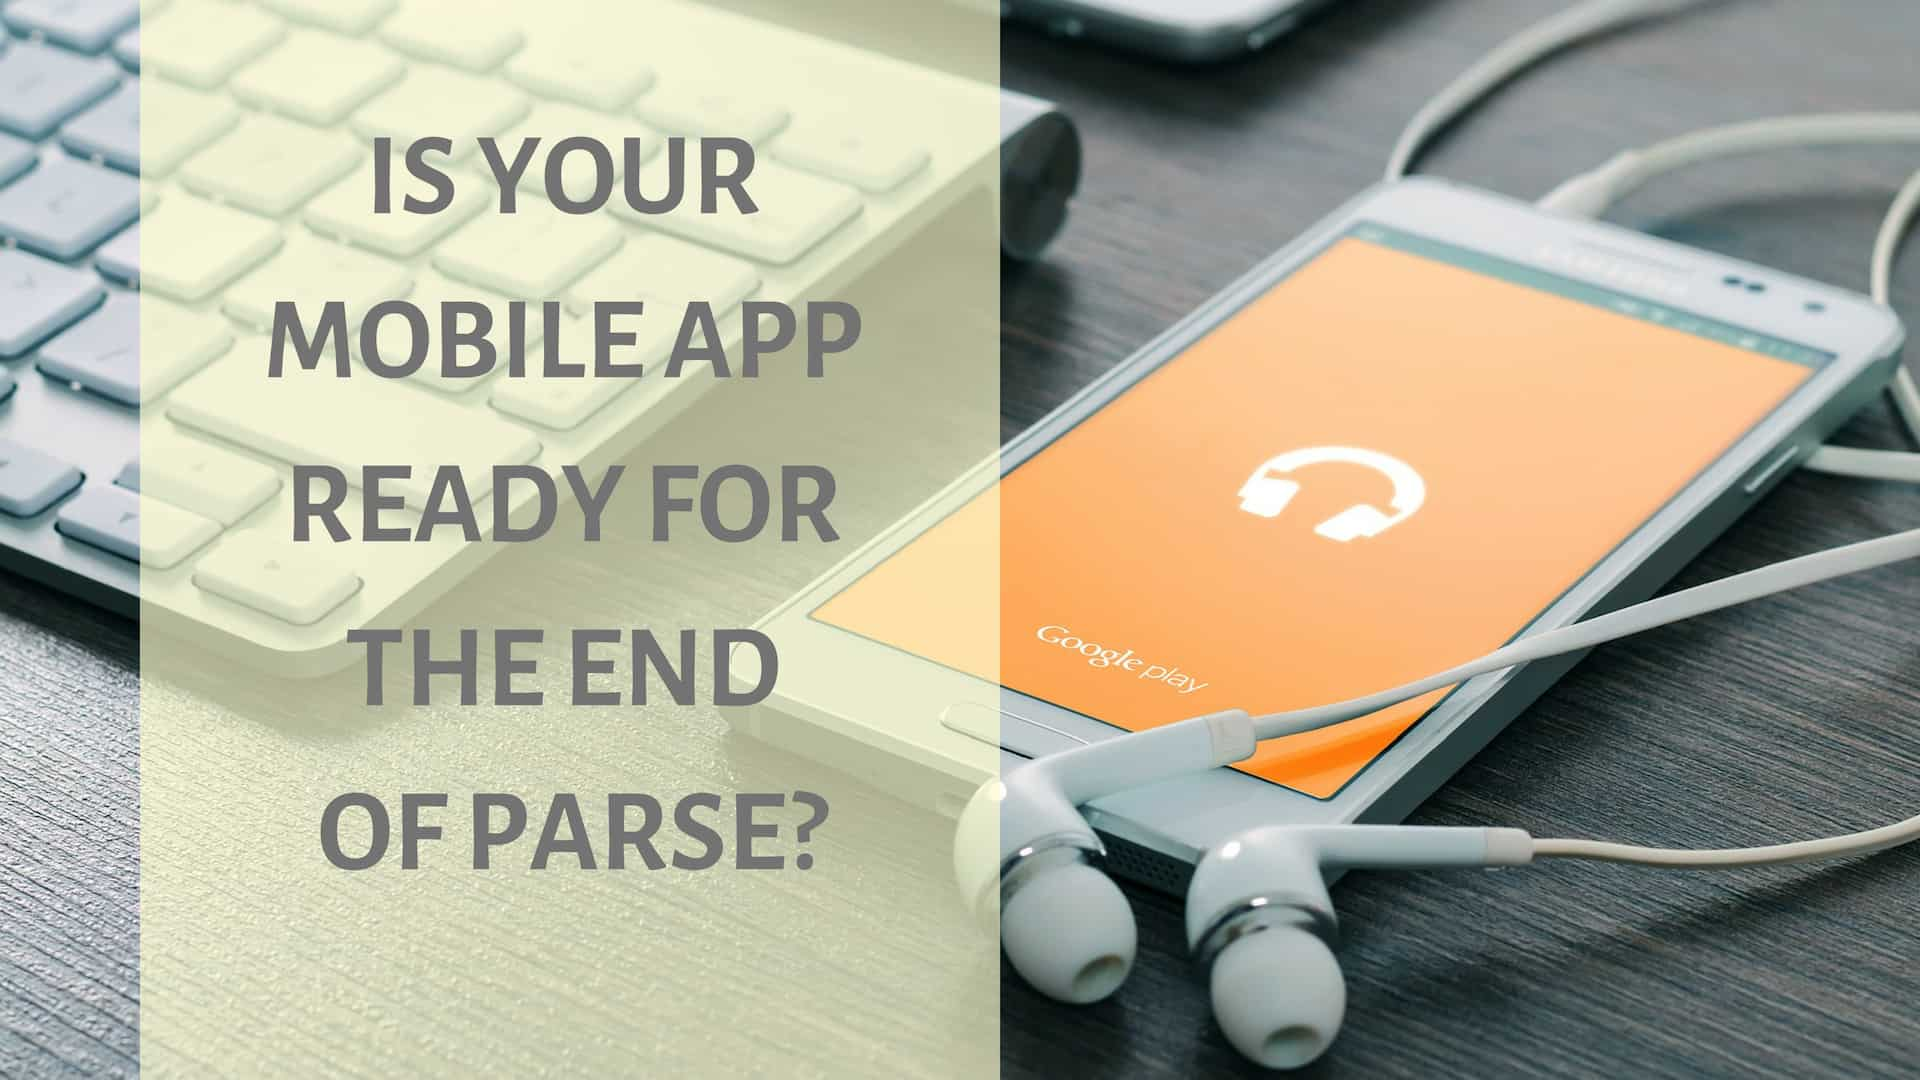 Is Your Mobile App Ready For The End Of Parse?